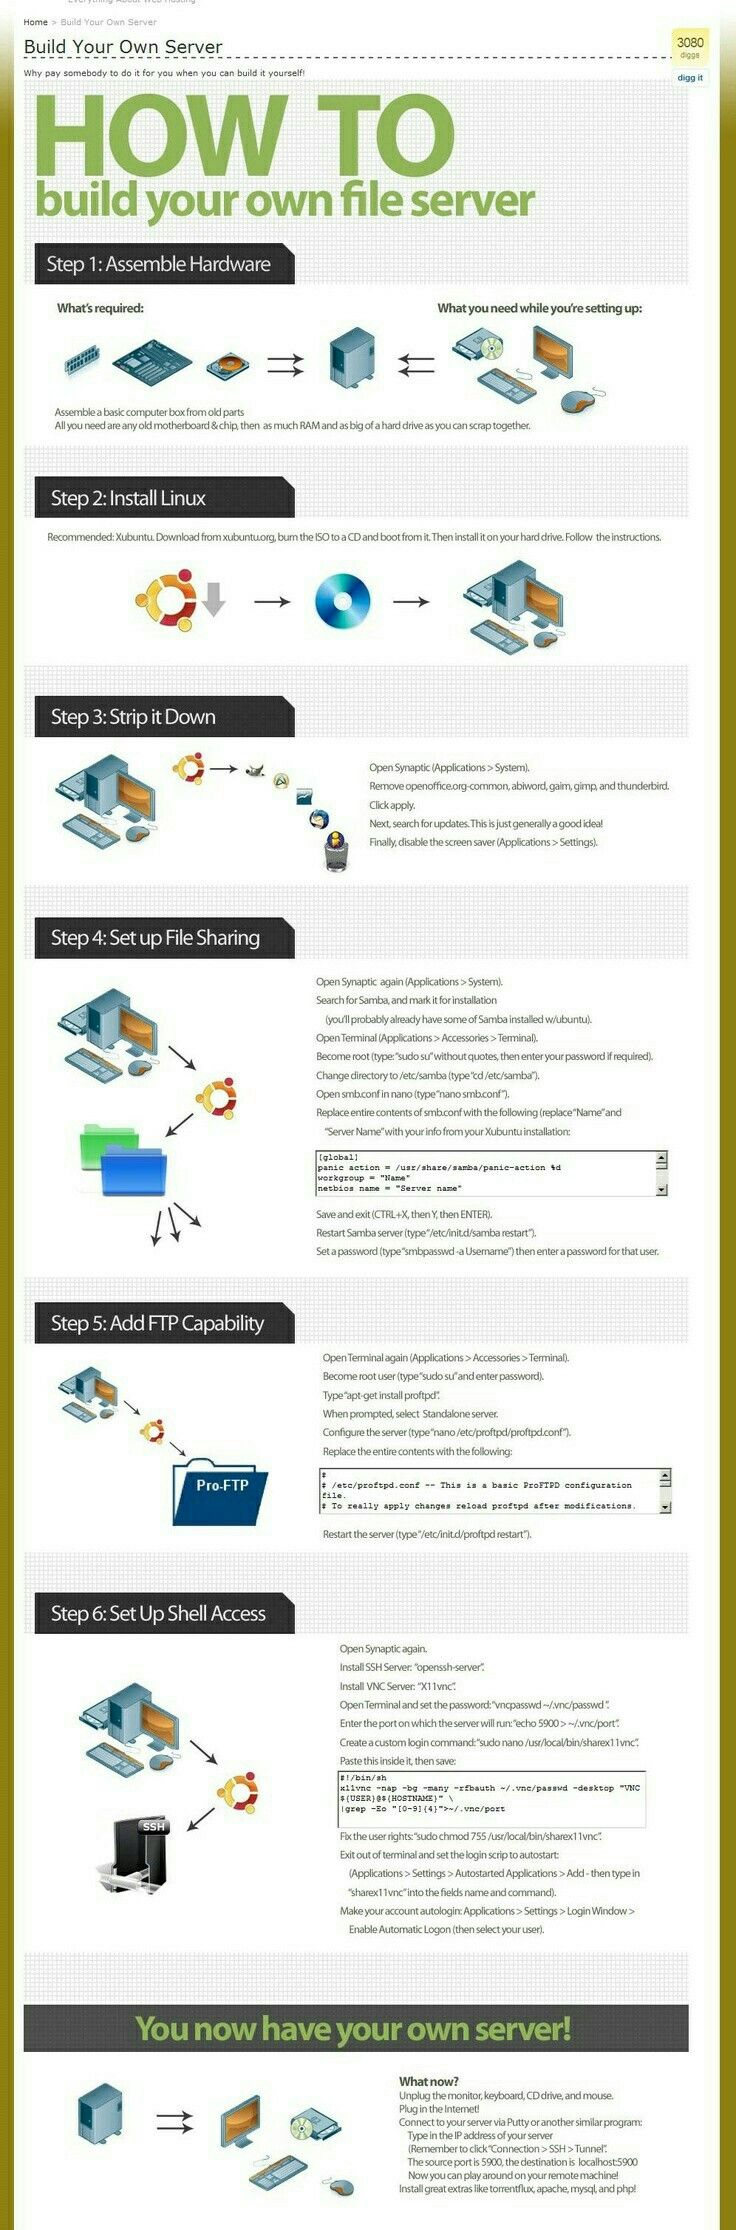 How to create a server? http://www.coolenews.com/get-65000-just-100-investment-no-work/